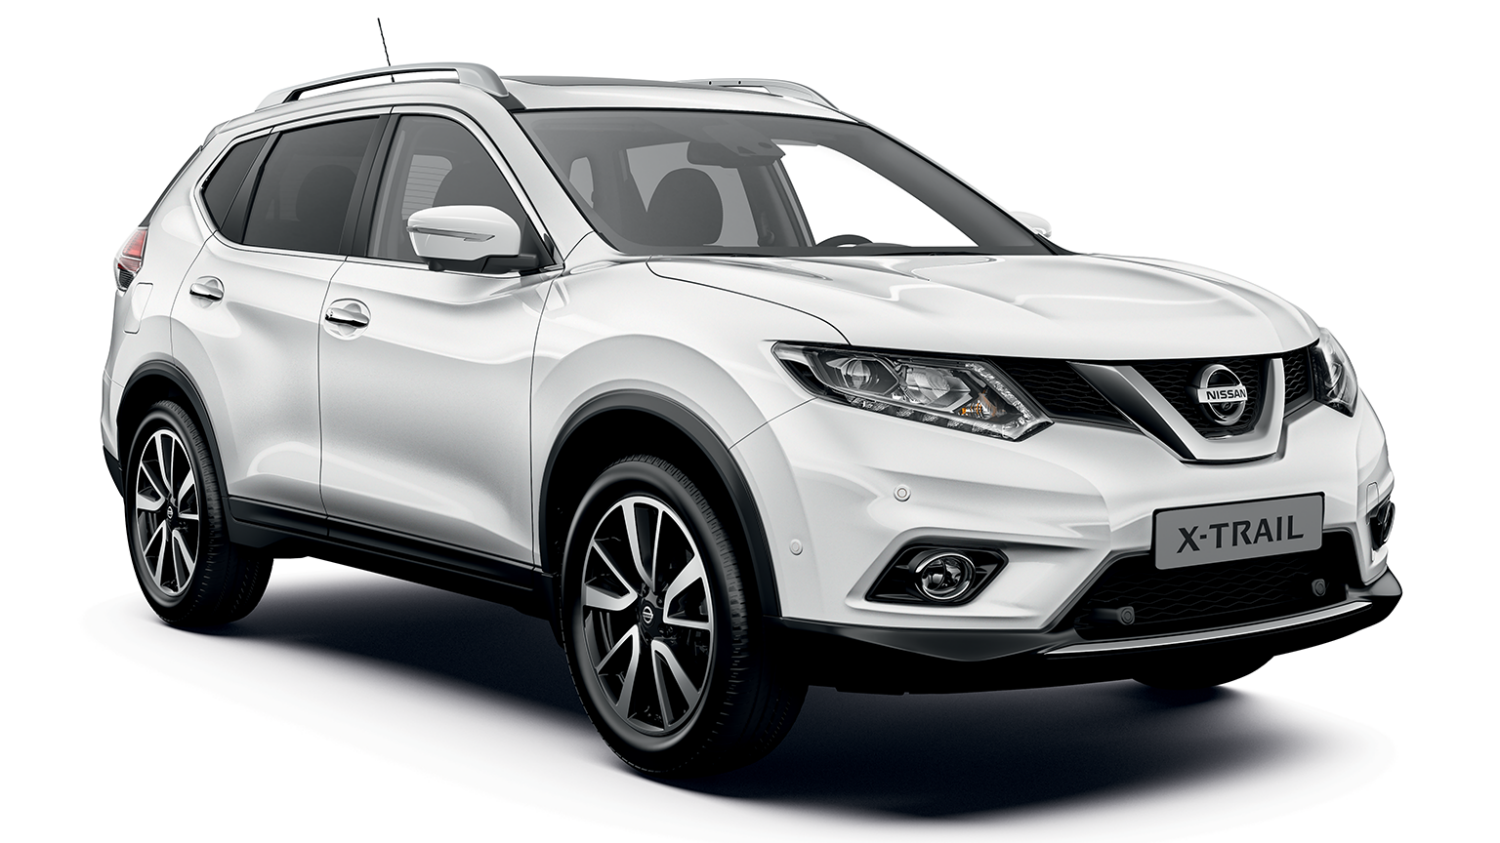 Nissan X-Trail Business+ - 3/4 front view